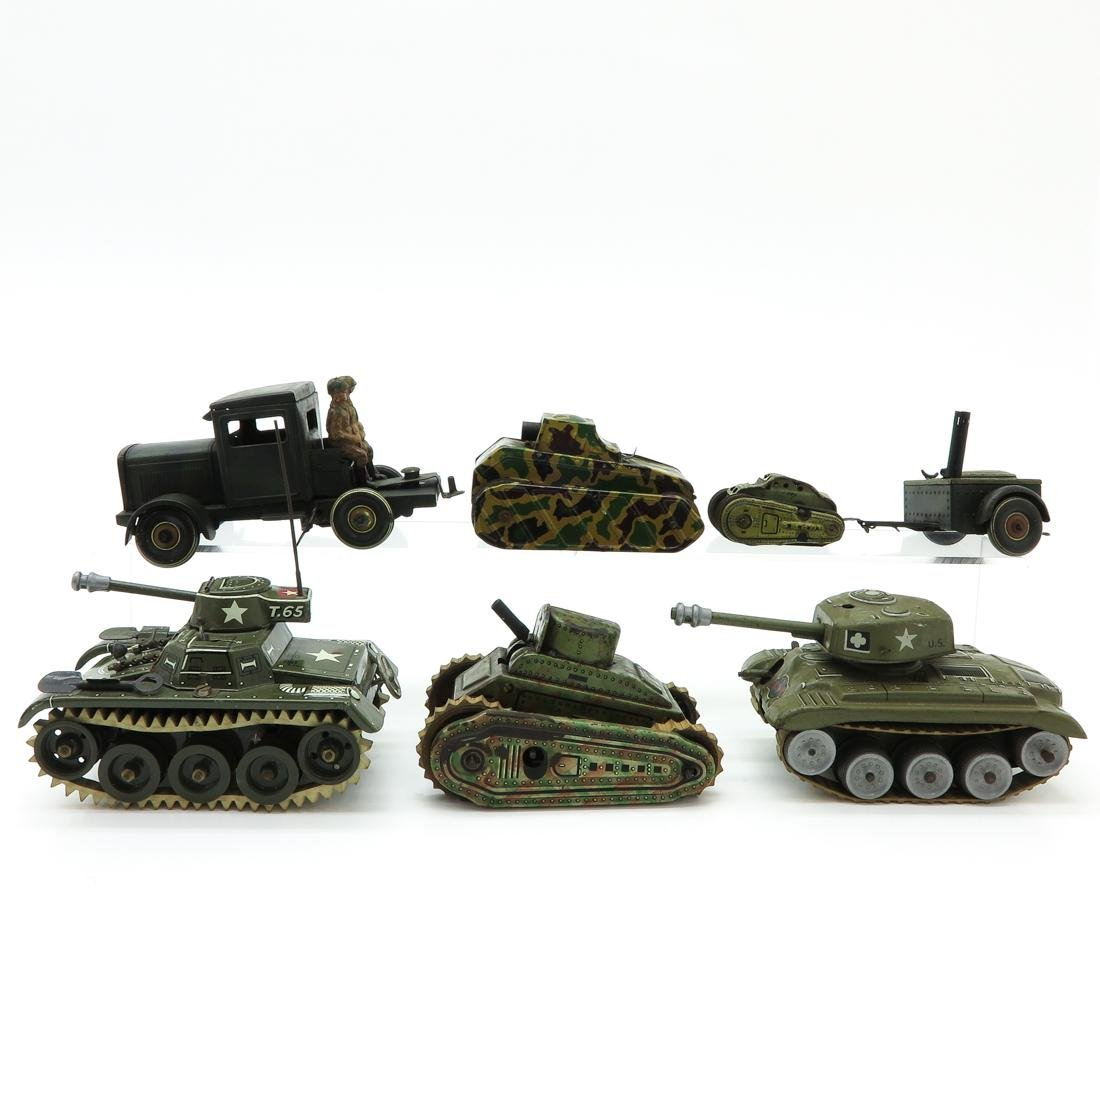 Lot of 7 Vintage Military Vehicles